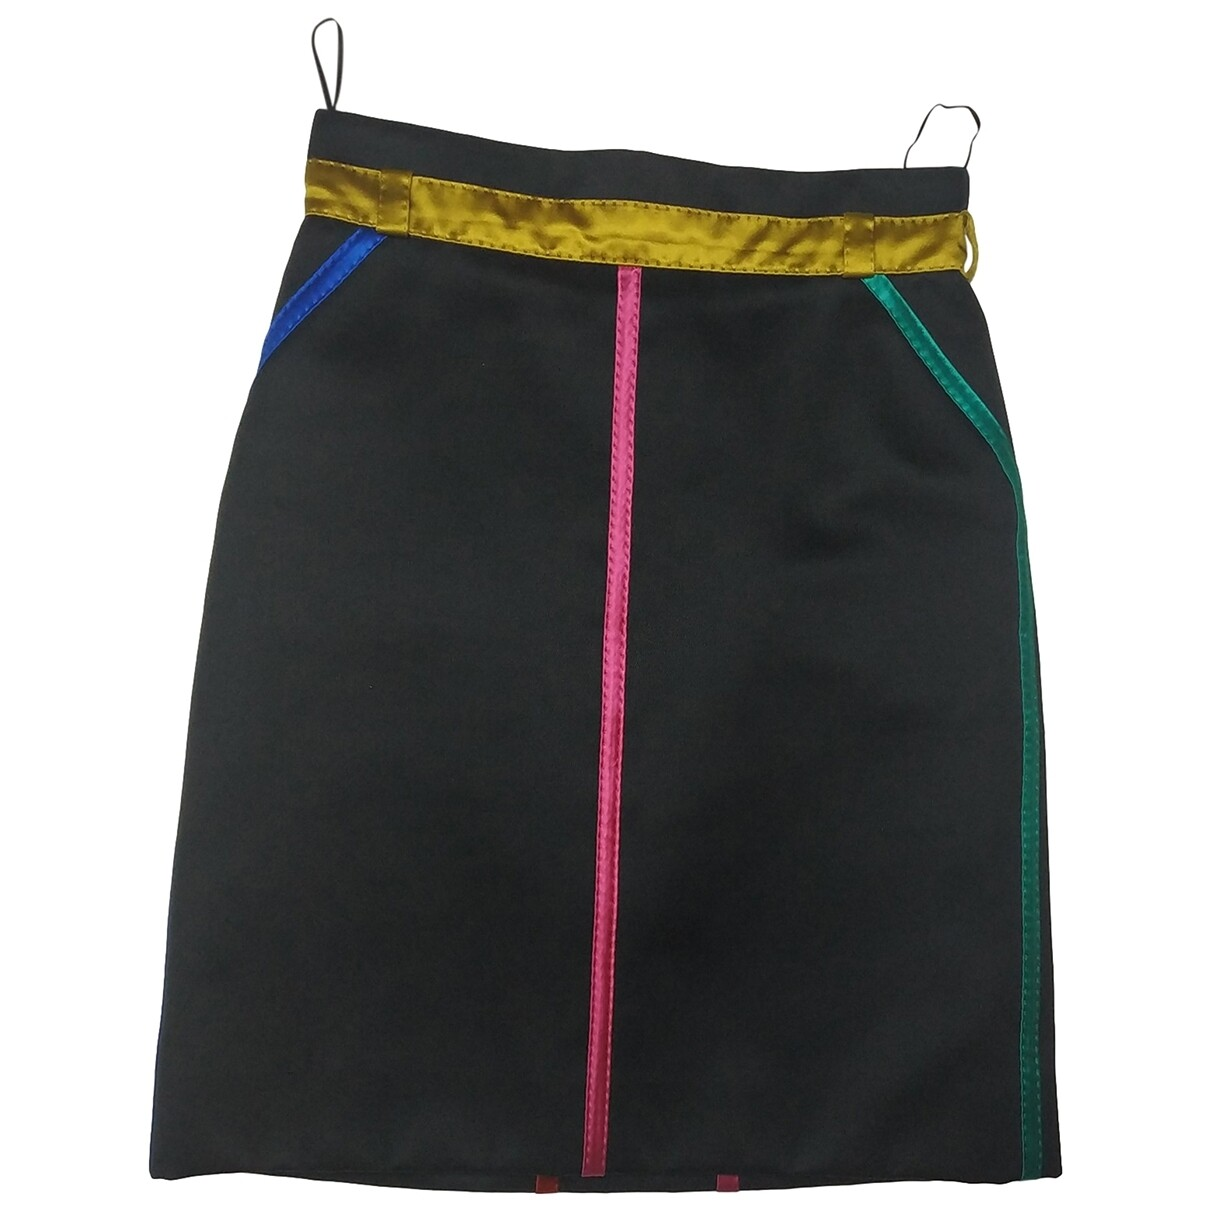 Louis Vuitton Neon mid-length skirt